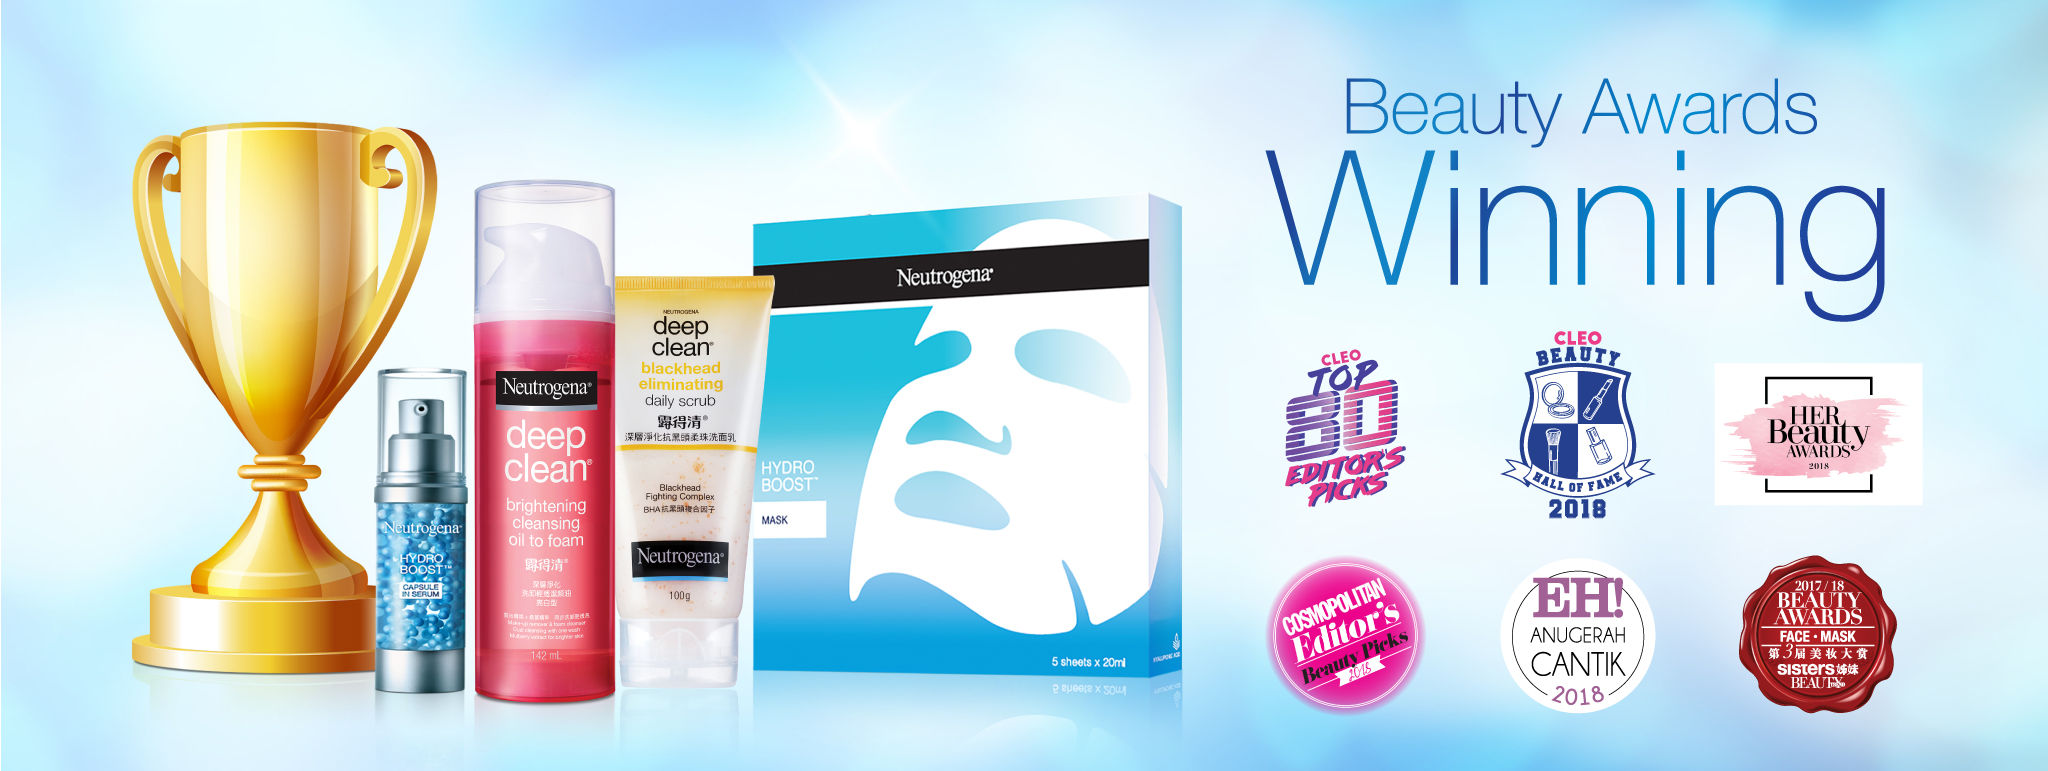 neutrogena-website-banner-4.jpeg